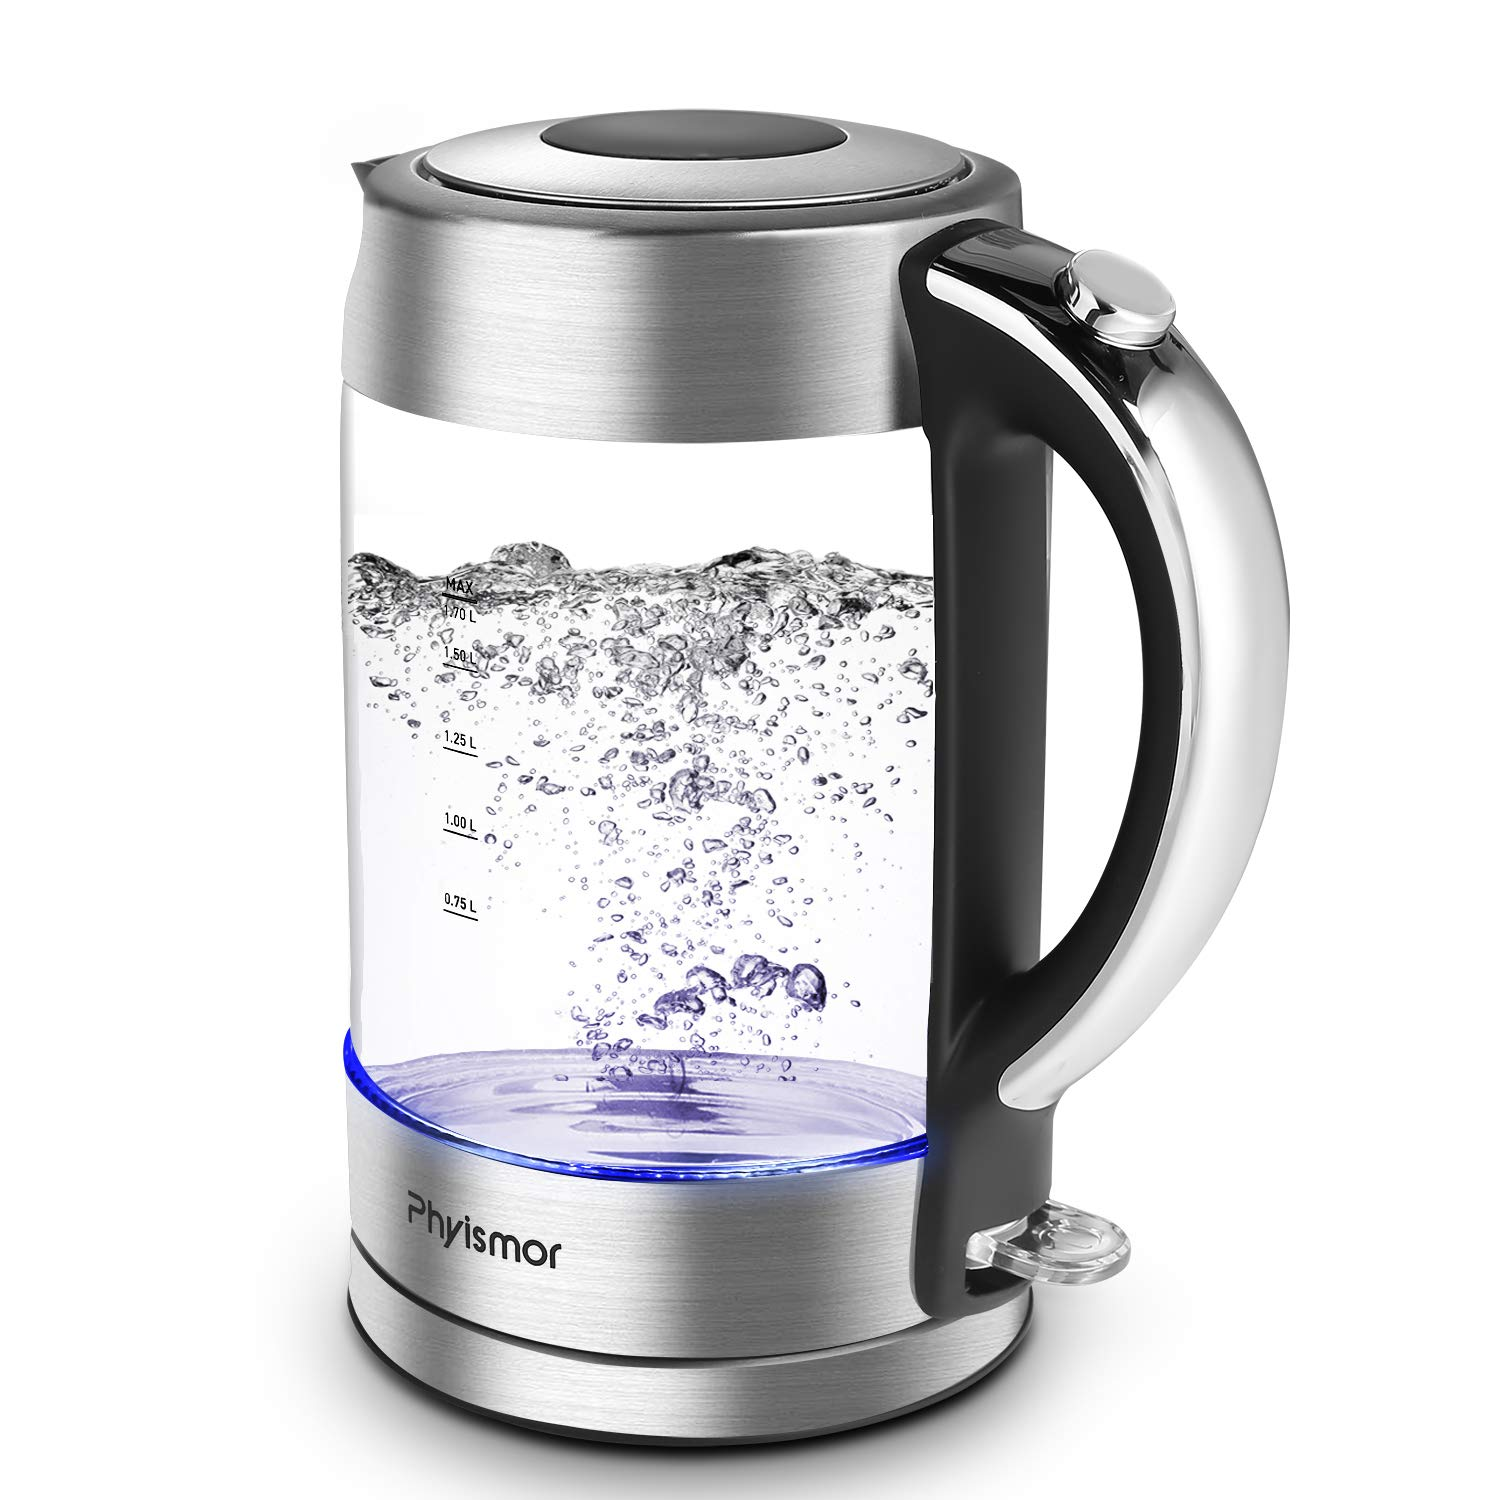 Electric Kettle, Phyismor 1.7 L Cordless BPA-Free Glass Kettle & Hot Water Boiler with Blue Led Light, Stainless Steel Finish, Auto Shut Off, Boil-Dry Protection, Borosilicate Glass, 1500W